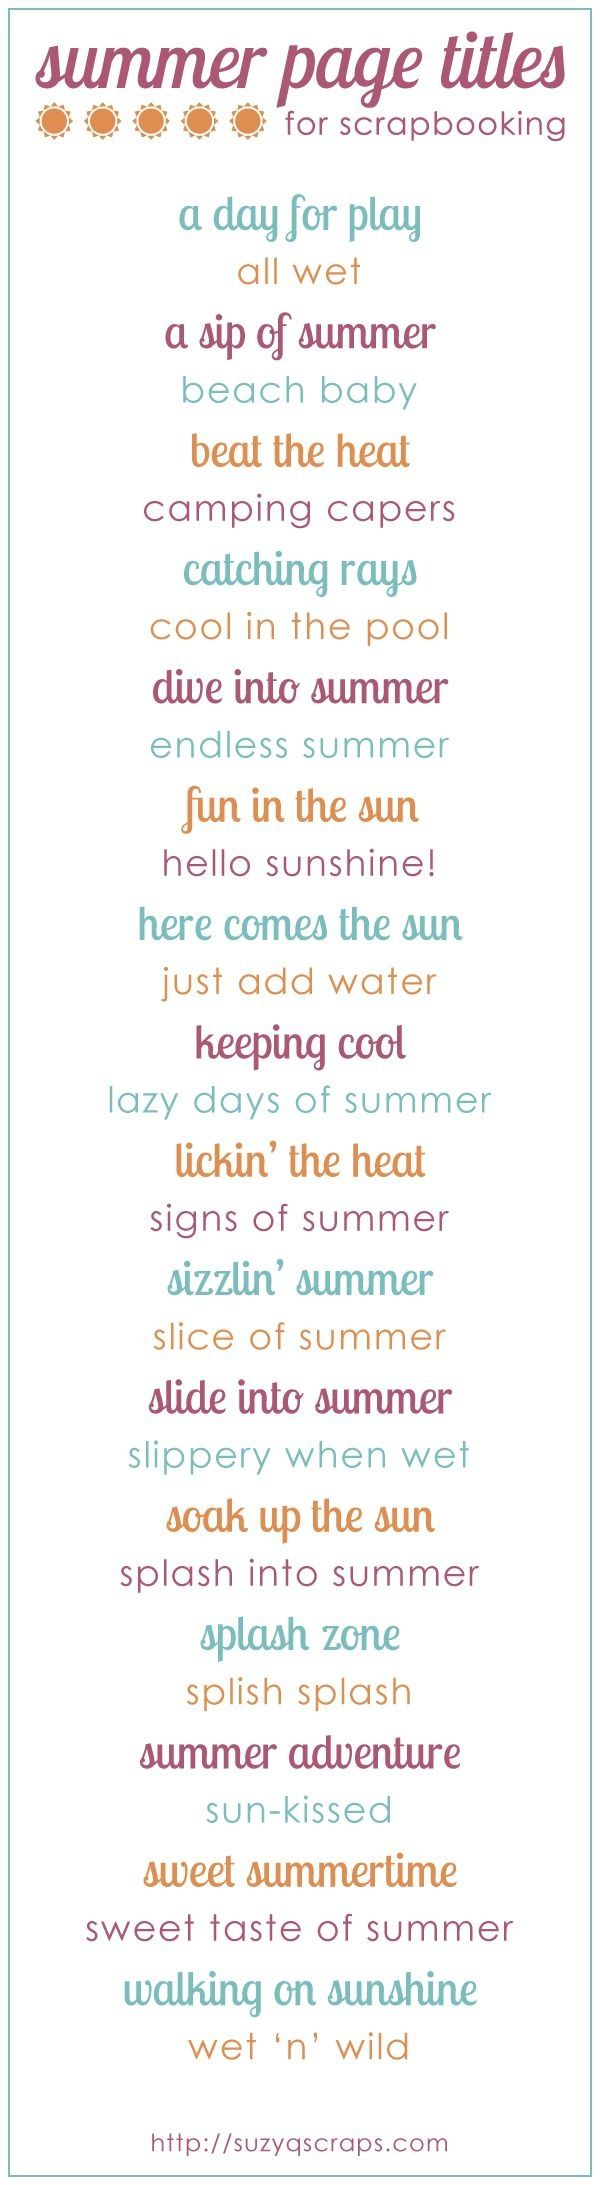 summer scrapbook idea | summer scrapbook page titles by mmonet